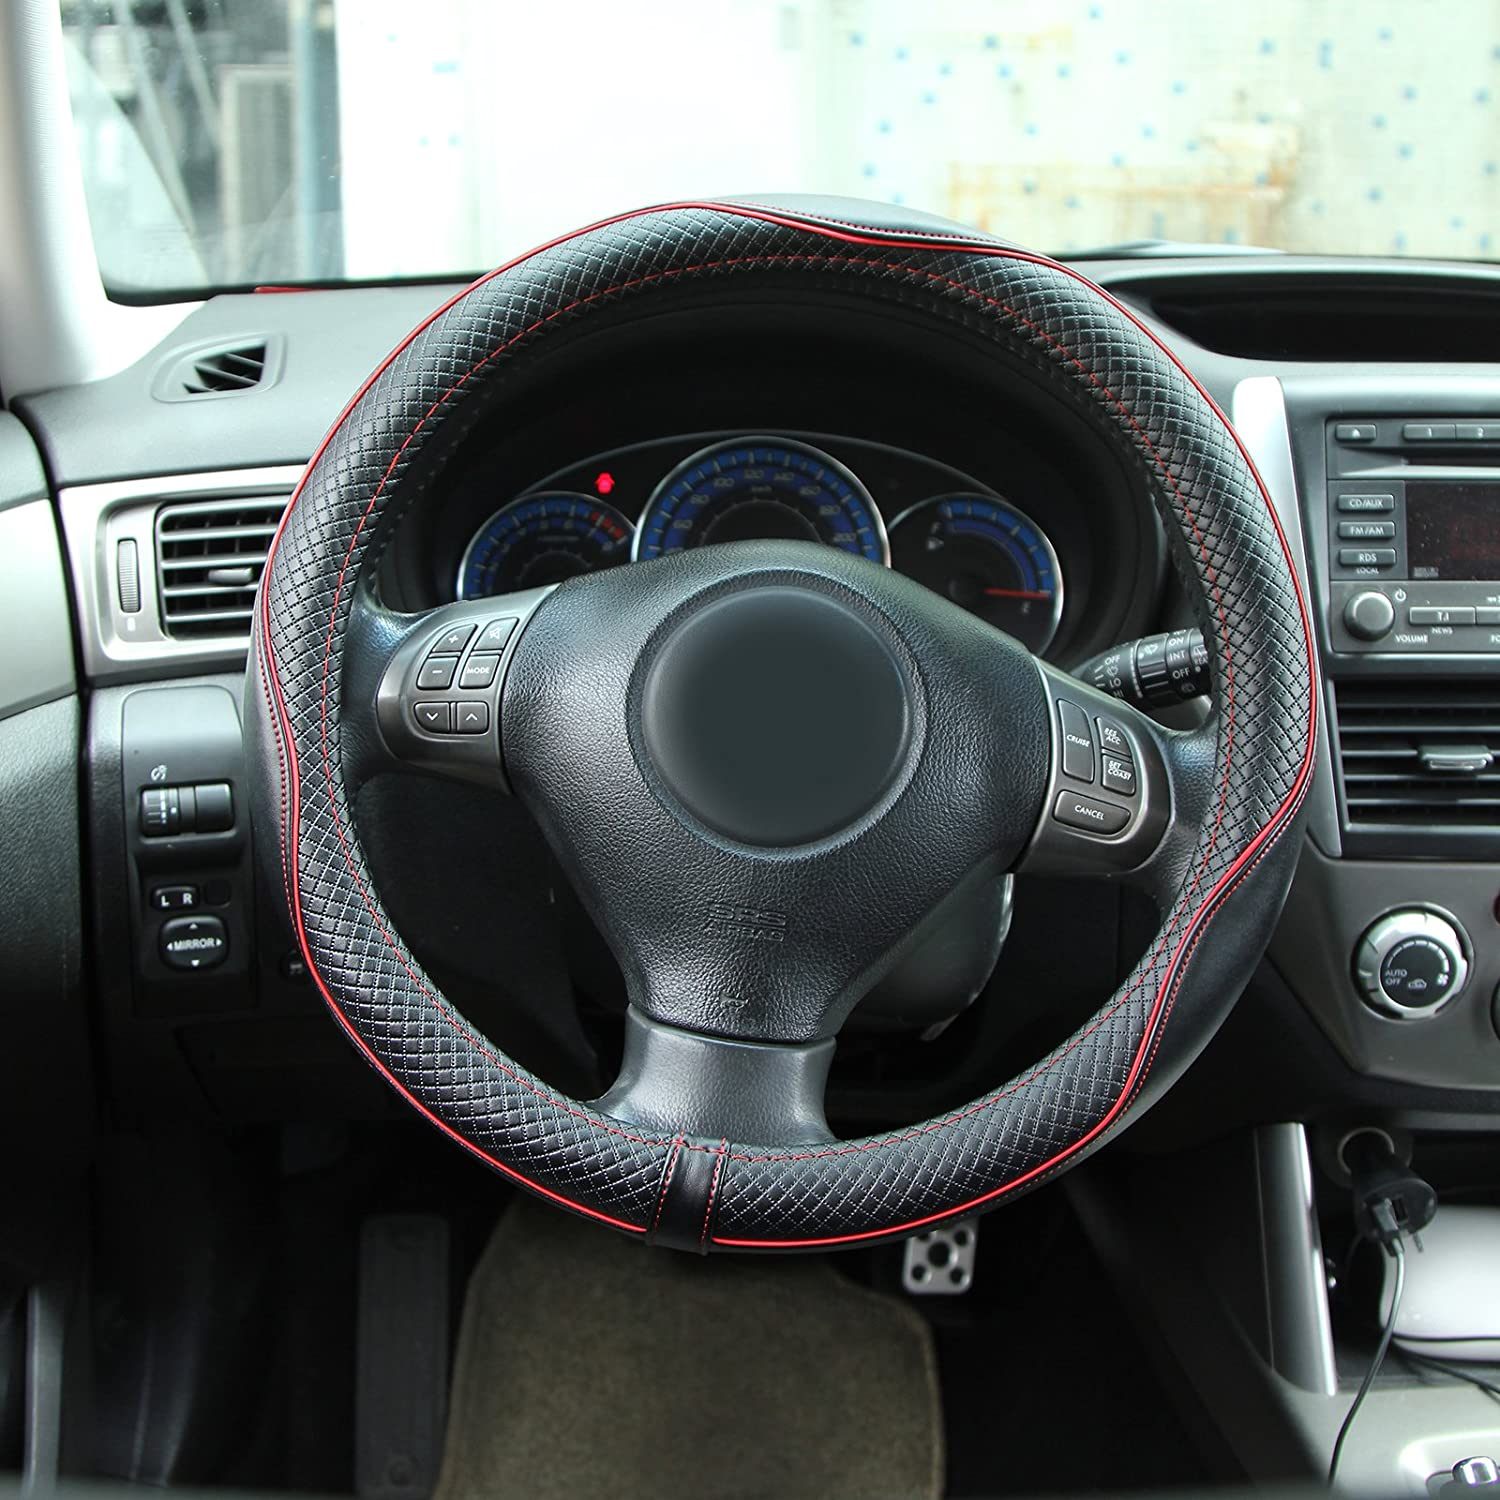 Dromedary Steering Wheels Covers Leather Steering Wheel Cover For Car Truck SUV Universal Black /& Red 15